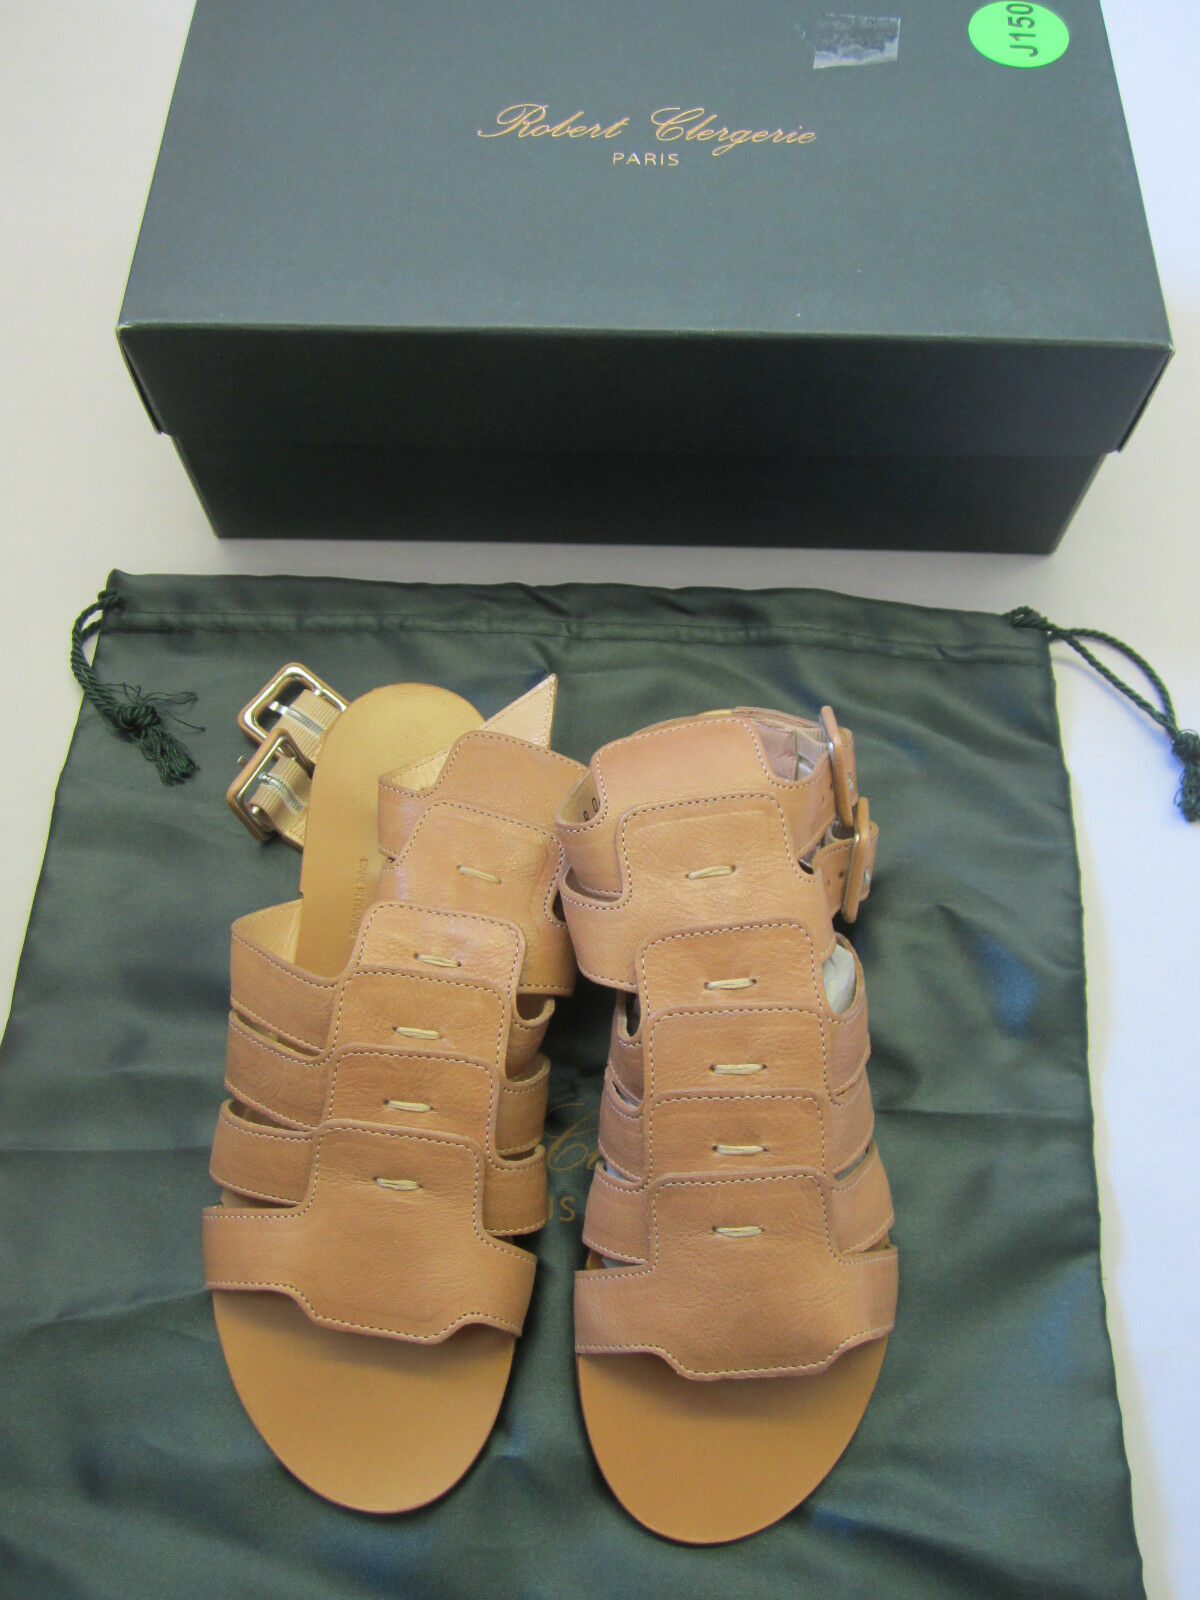 Robert Clergeries Tan Leather Gladiator Flats, Sindian, Sindian, Sindian, Größe 6 1 2 B 50b6b0